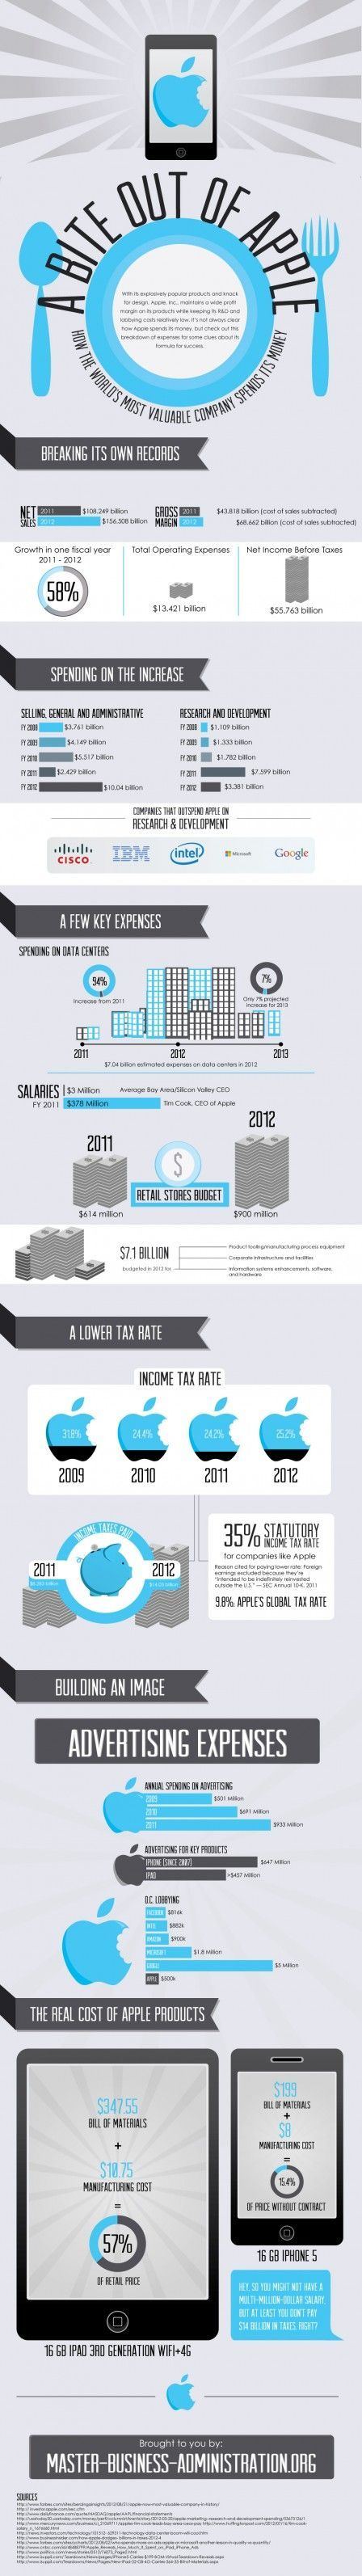 infographie depenses apple